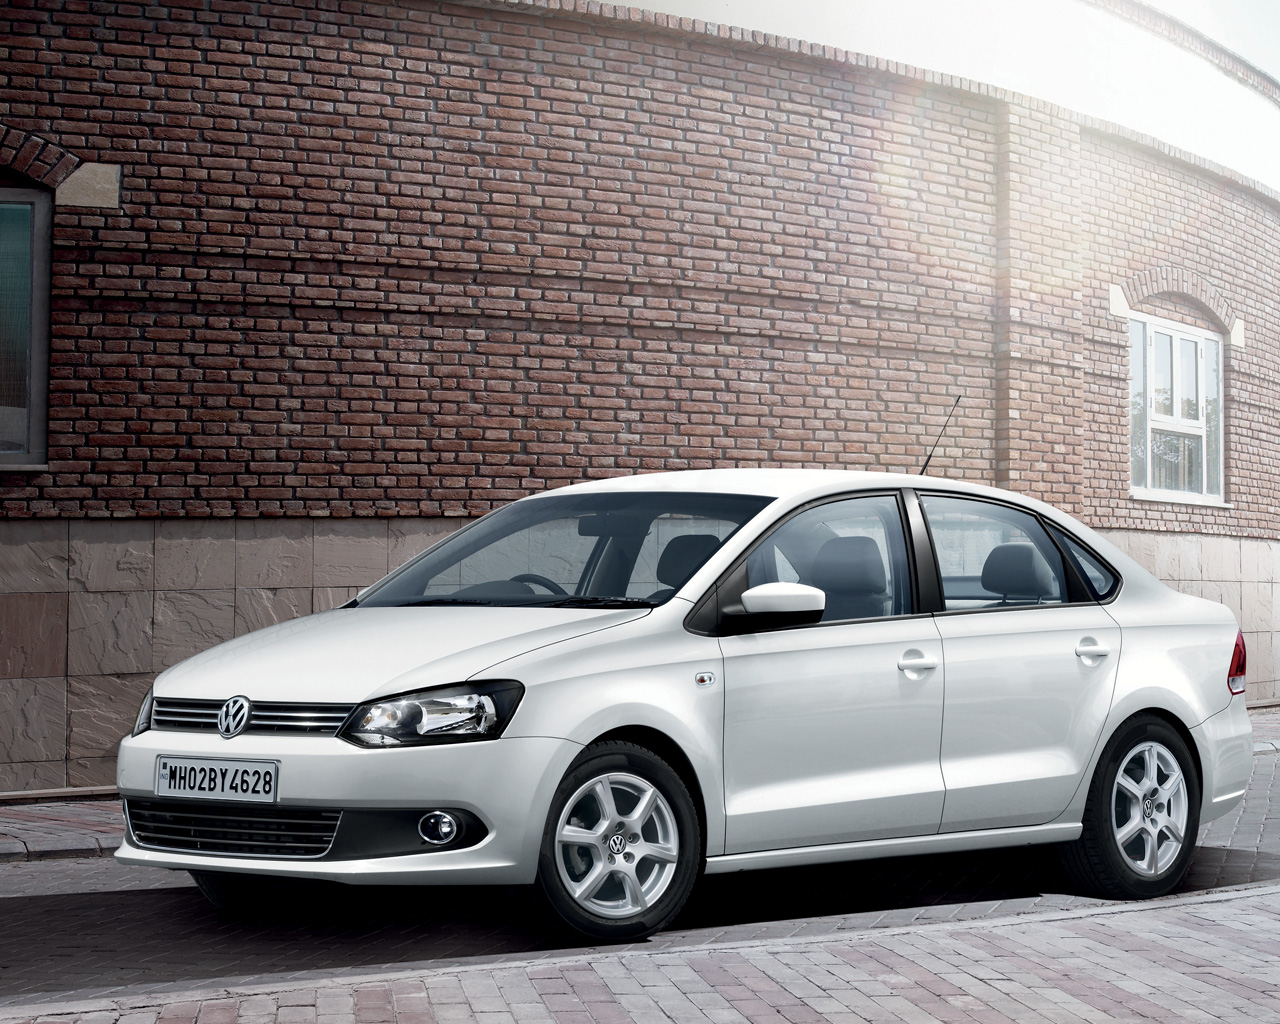 Ugly Car Wallpaper Volkswagen Vento 2010 2011 2012 2013 2014 2015